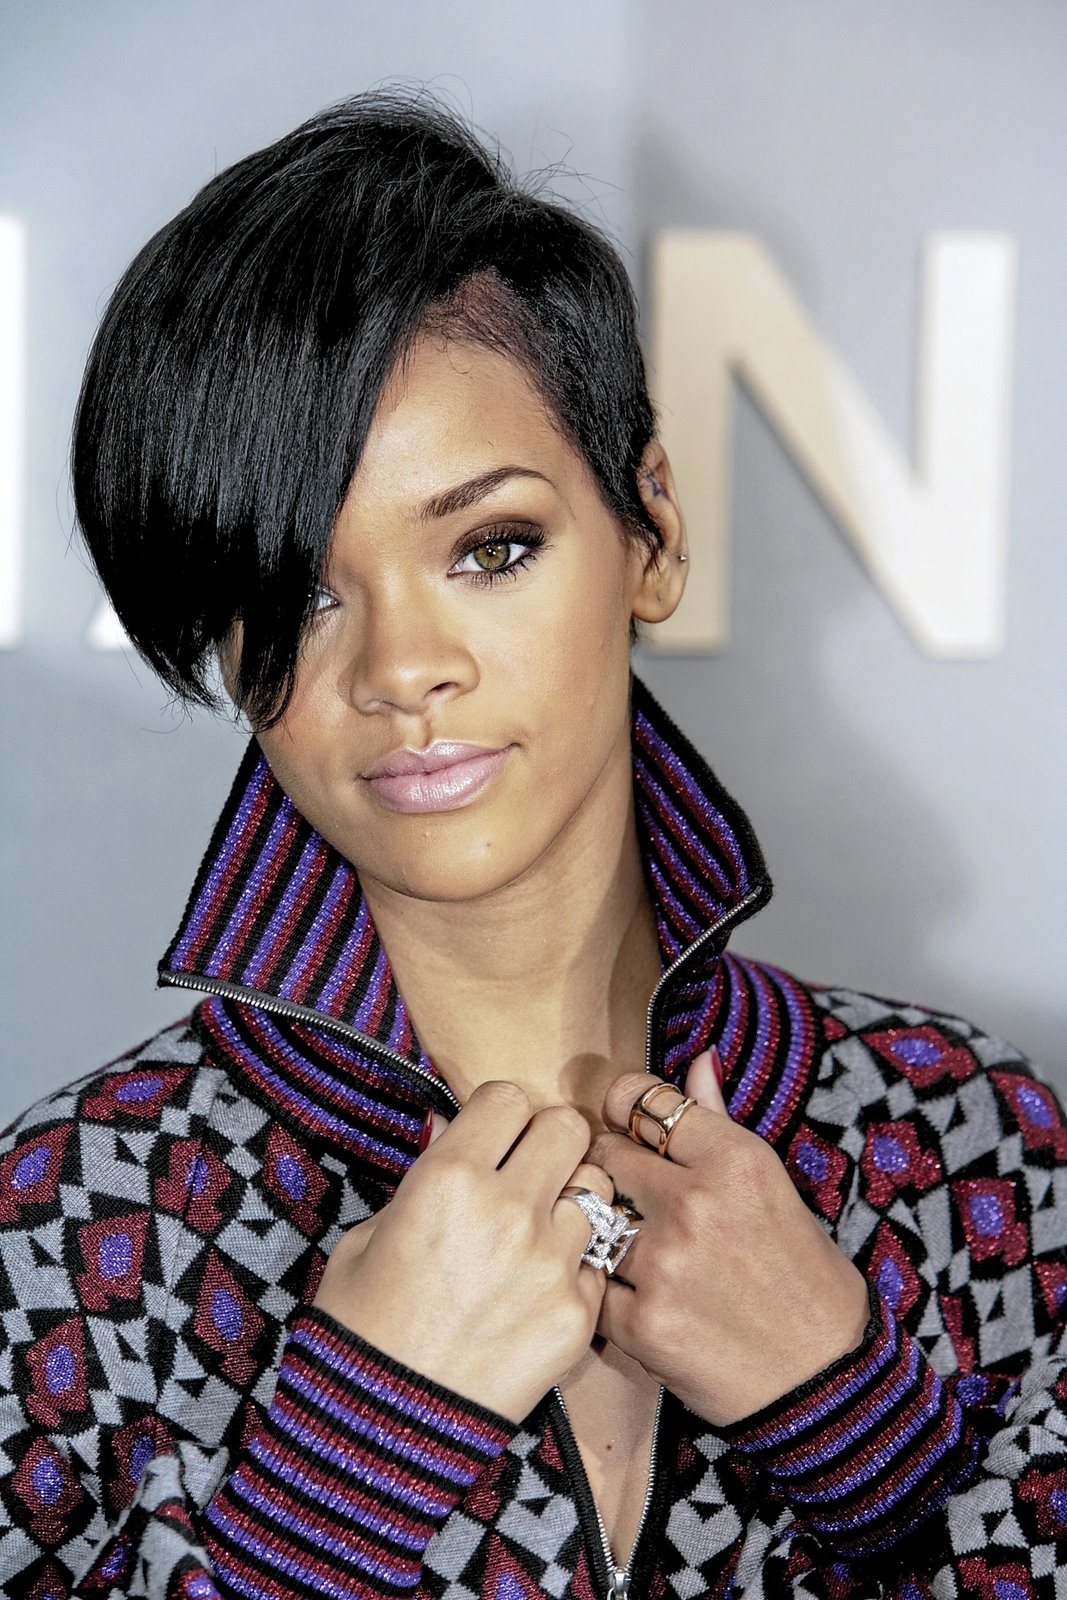 Rihanna+-+Black+Hair.jpg